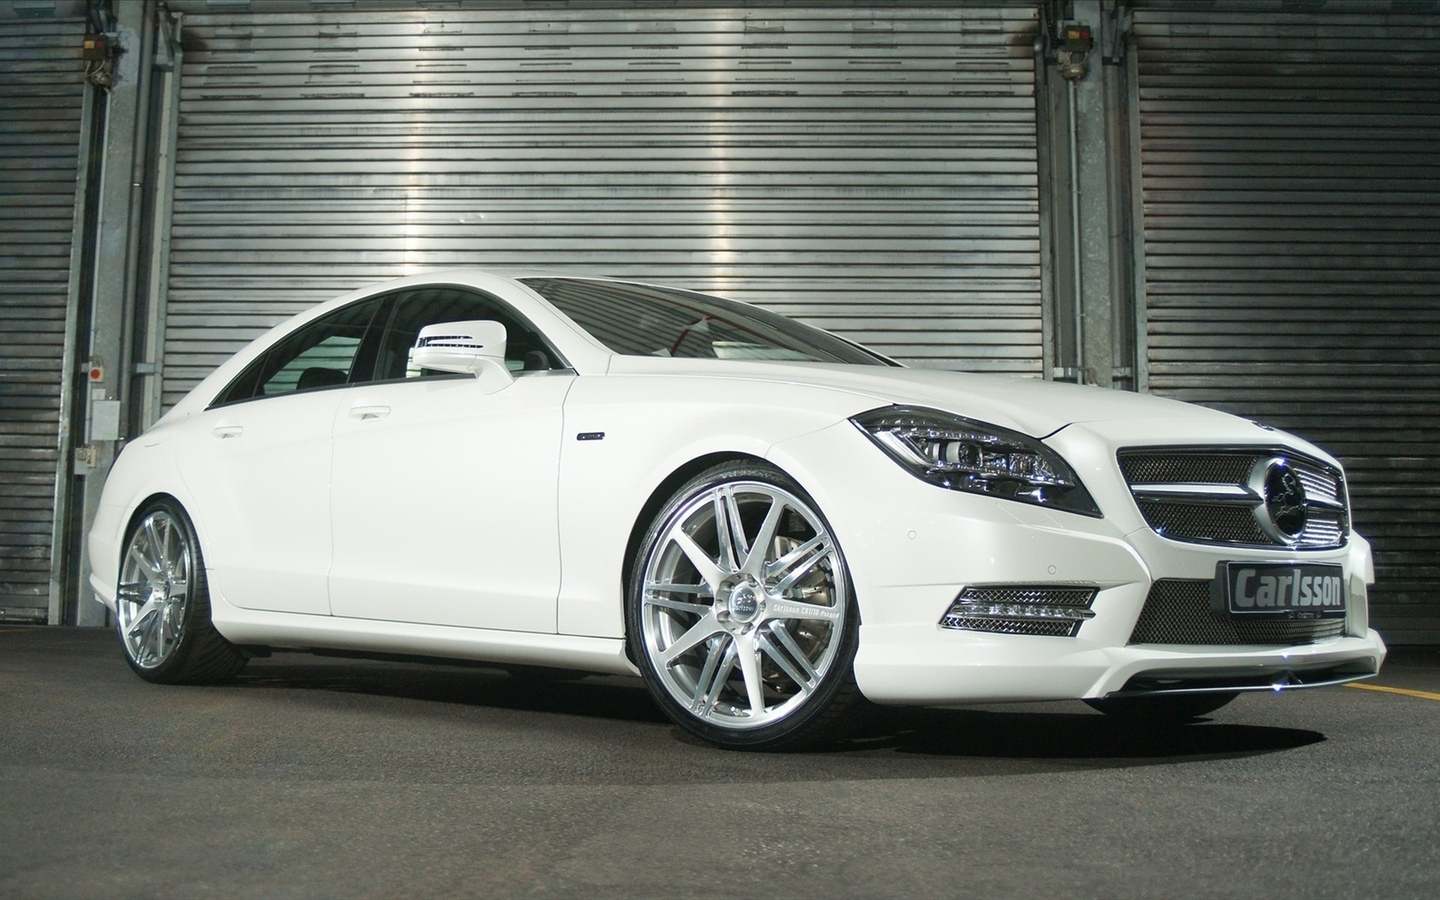 type, model, cls, carlsson, mercedes-benz